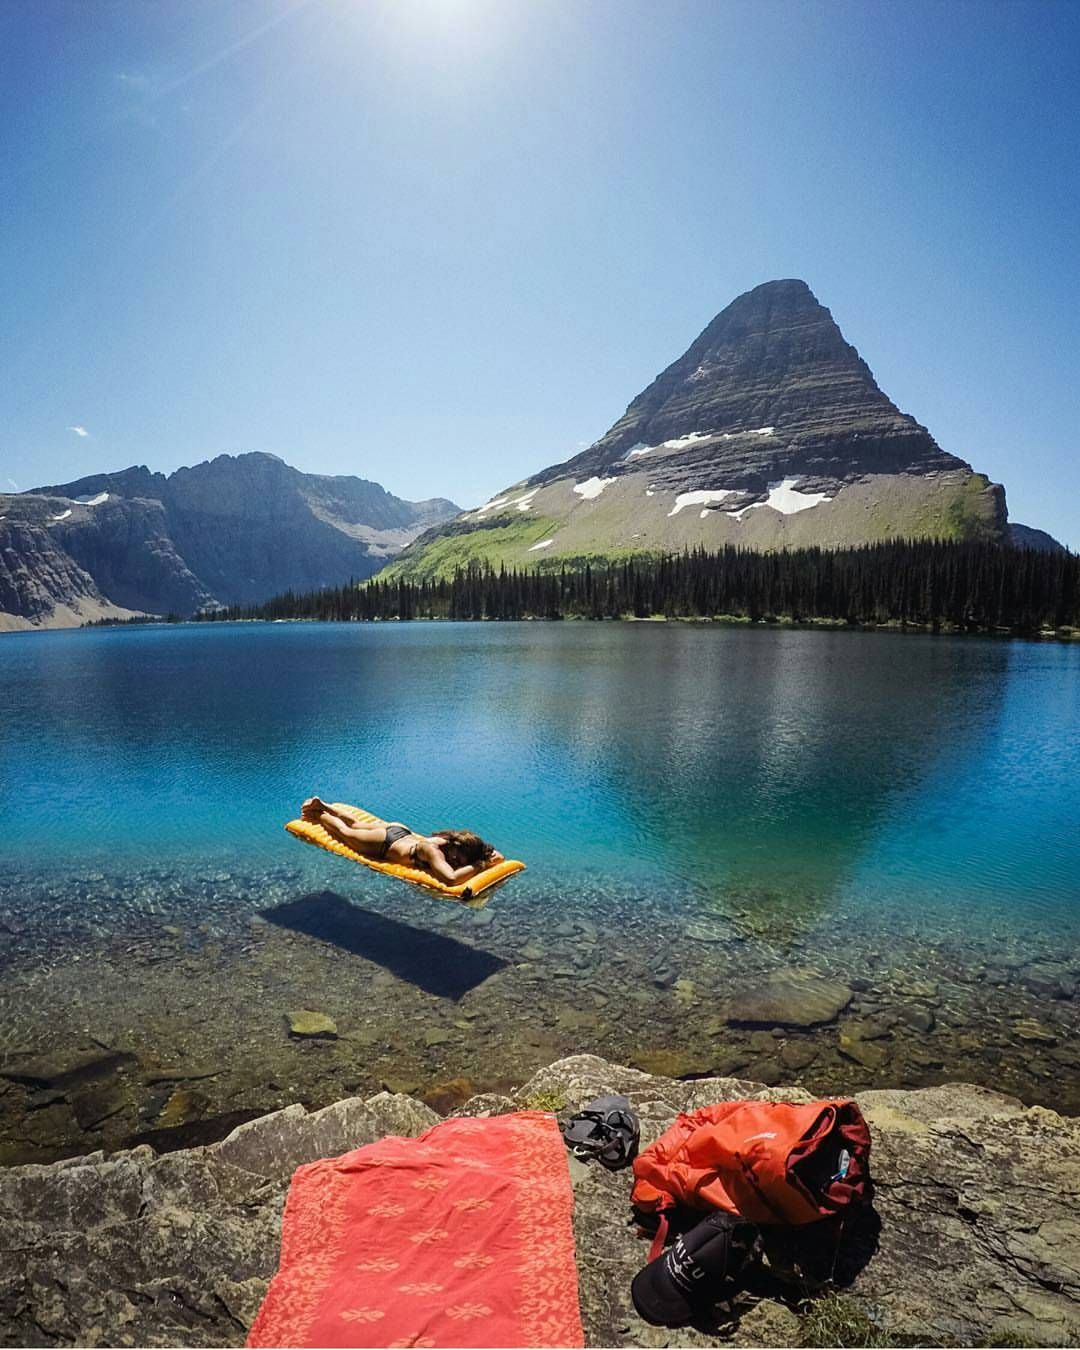 Places To Visit In Montana Usa: Pin By Marilyn Medici On Beautiful Nature